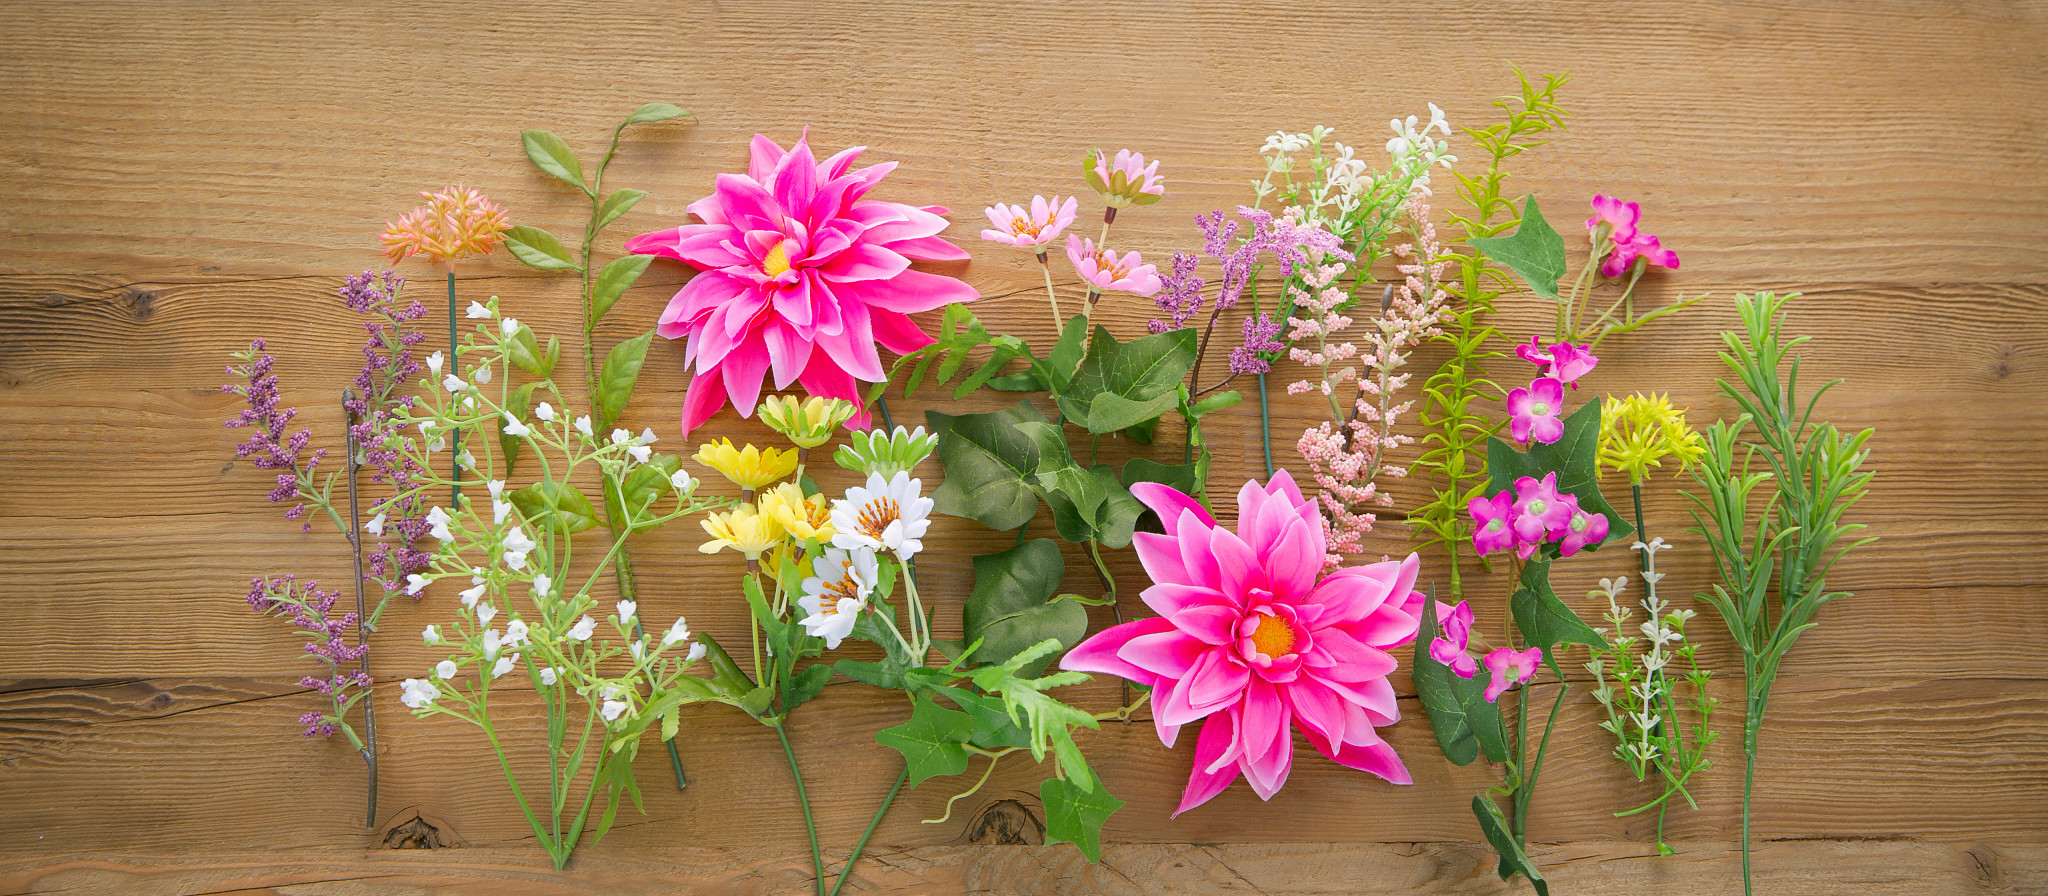 Balsam Hill Artificial Flowers flatlay on wooden table